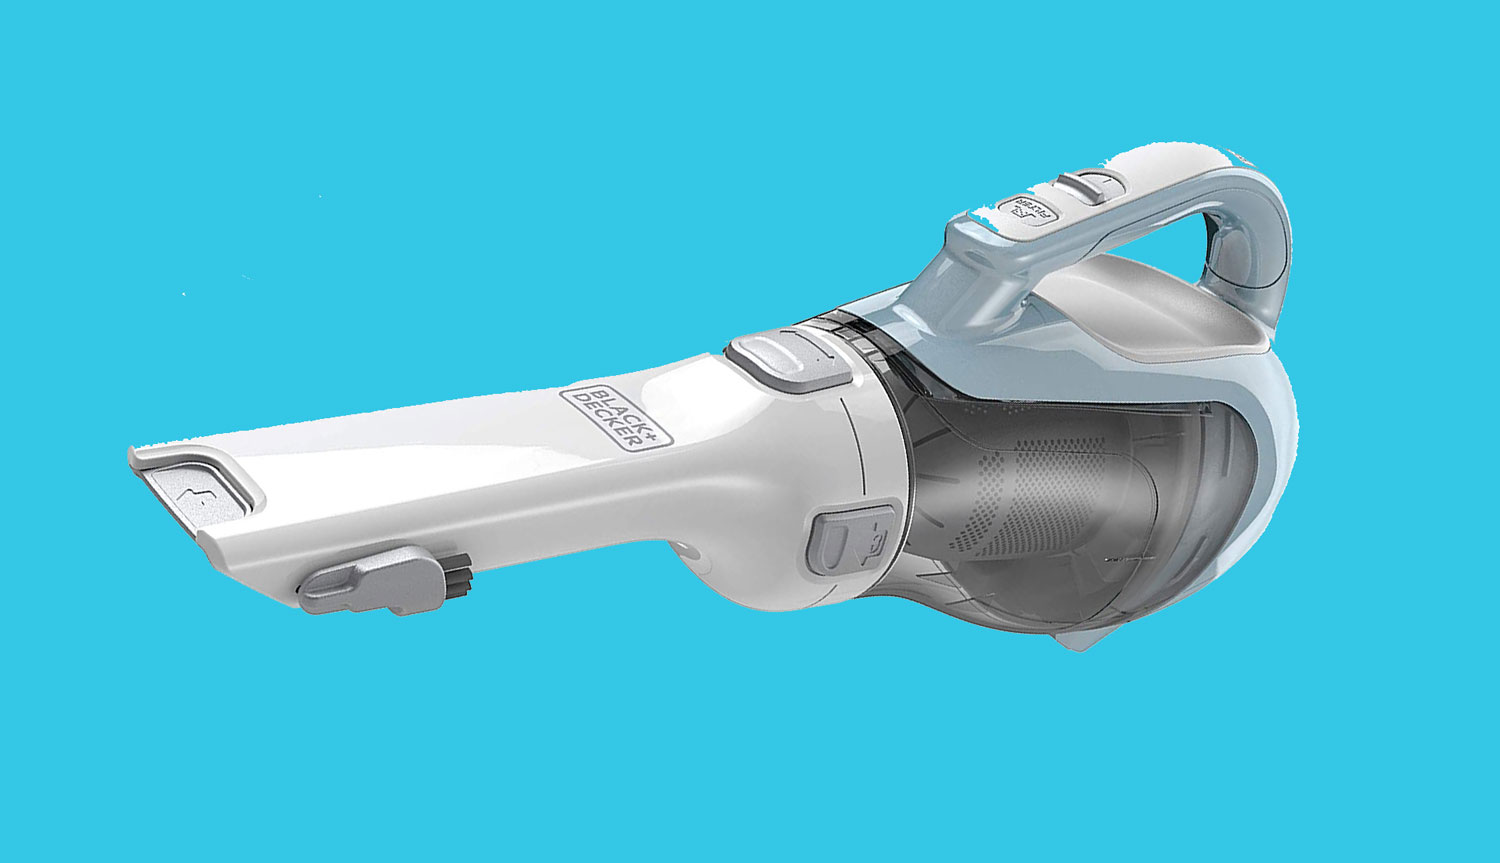 Hand Vacuum with batteries that hold a charge